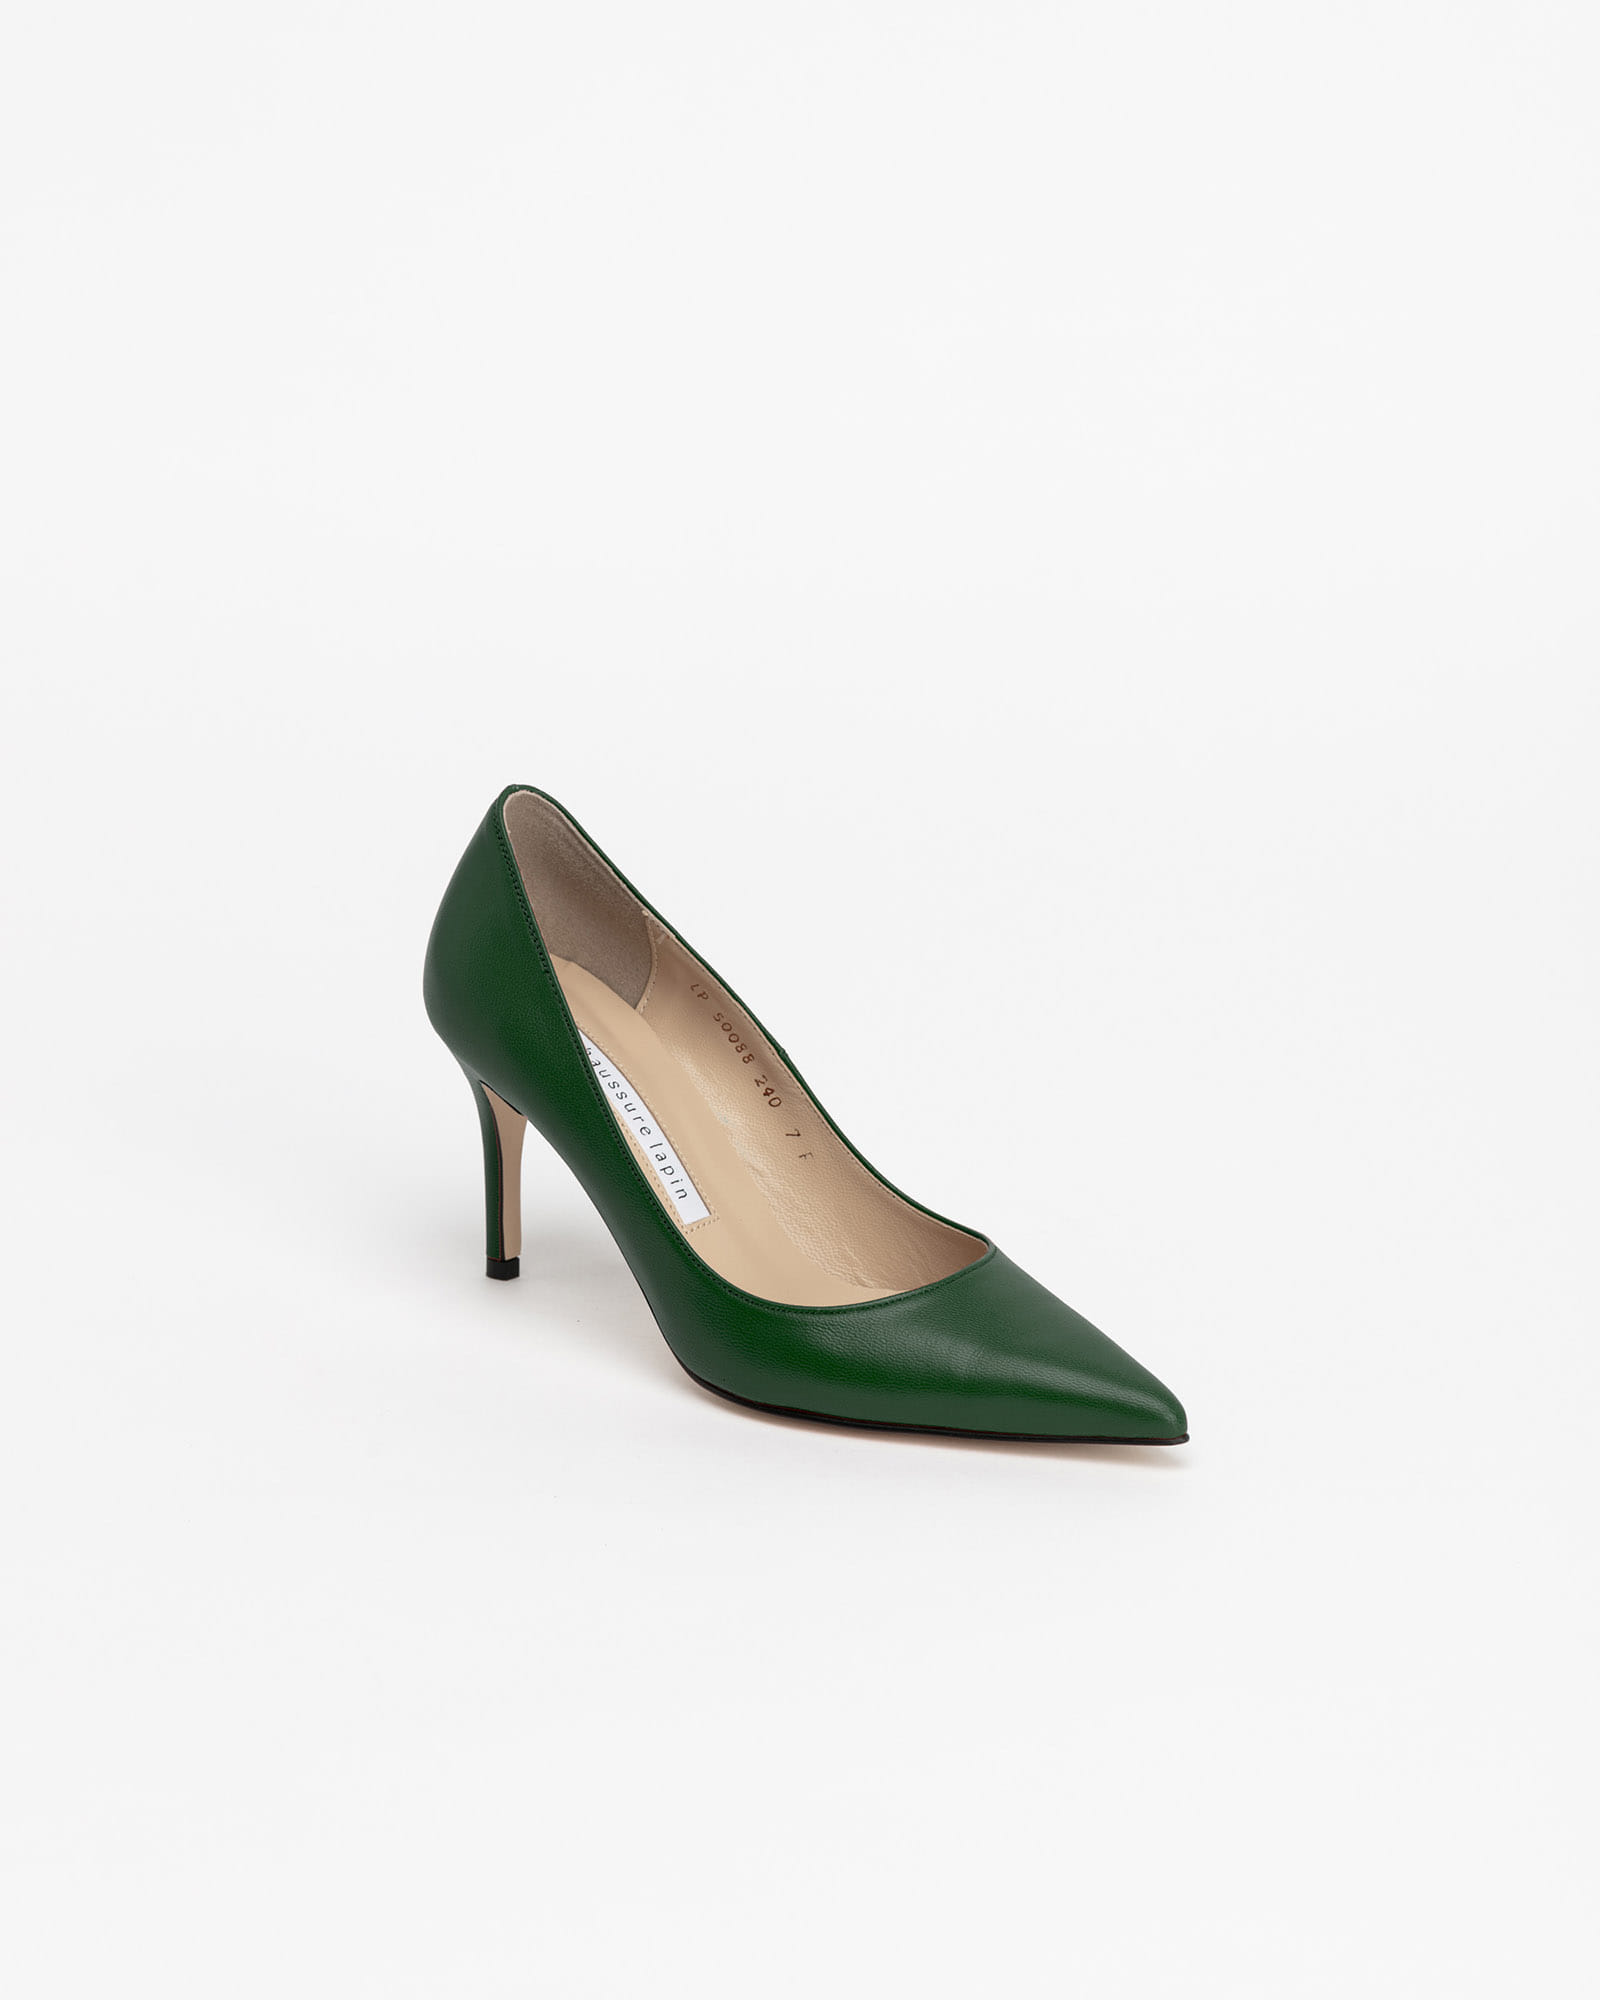 Chauffeur Stilletto Pumps in Forest Green